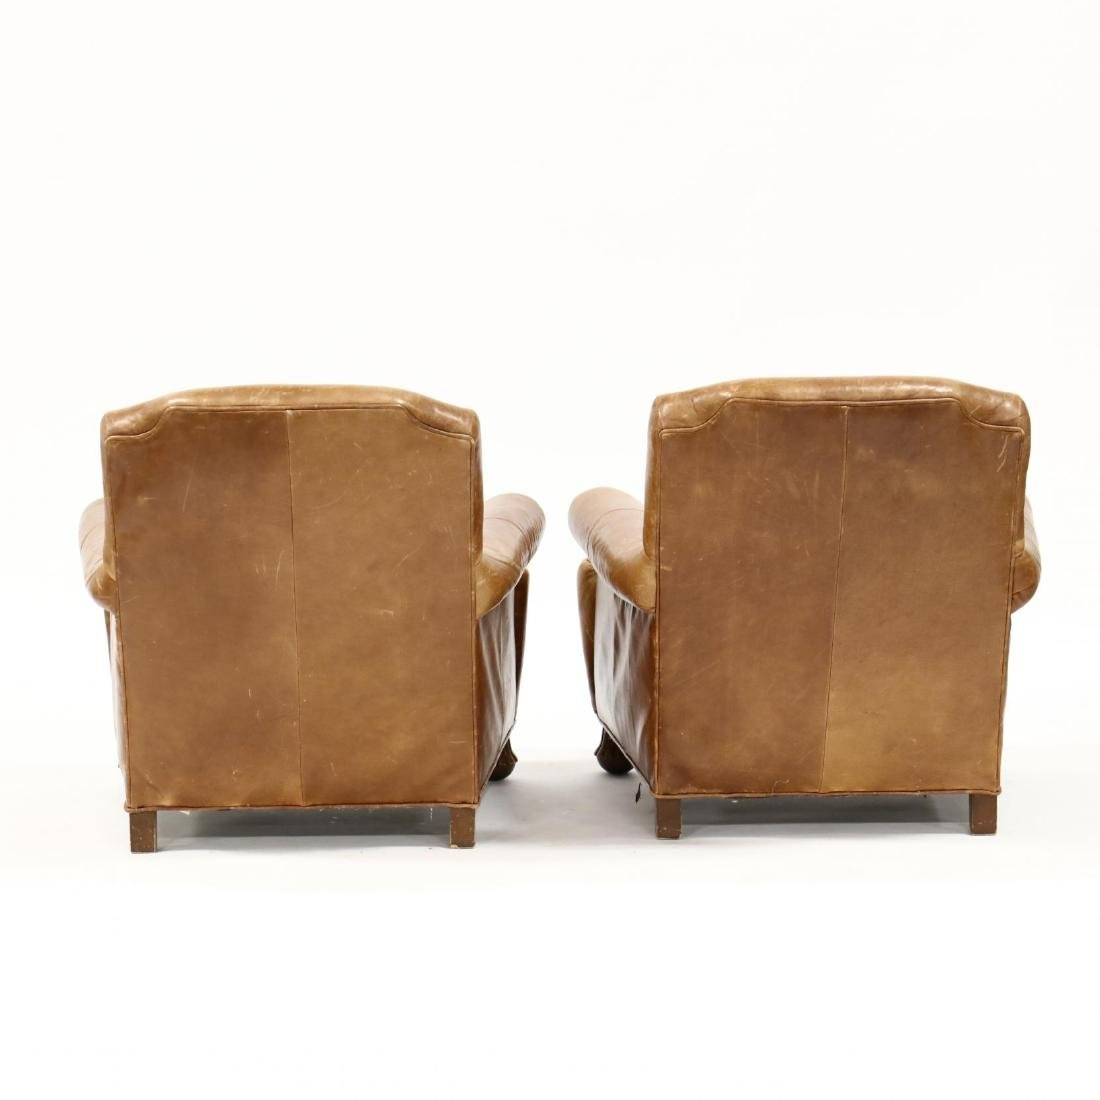 ABC Carpet & Home, Pair of Leather Club Chairs and - 2